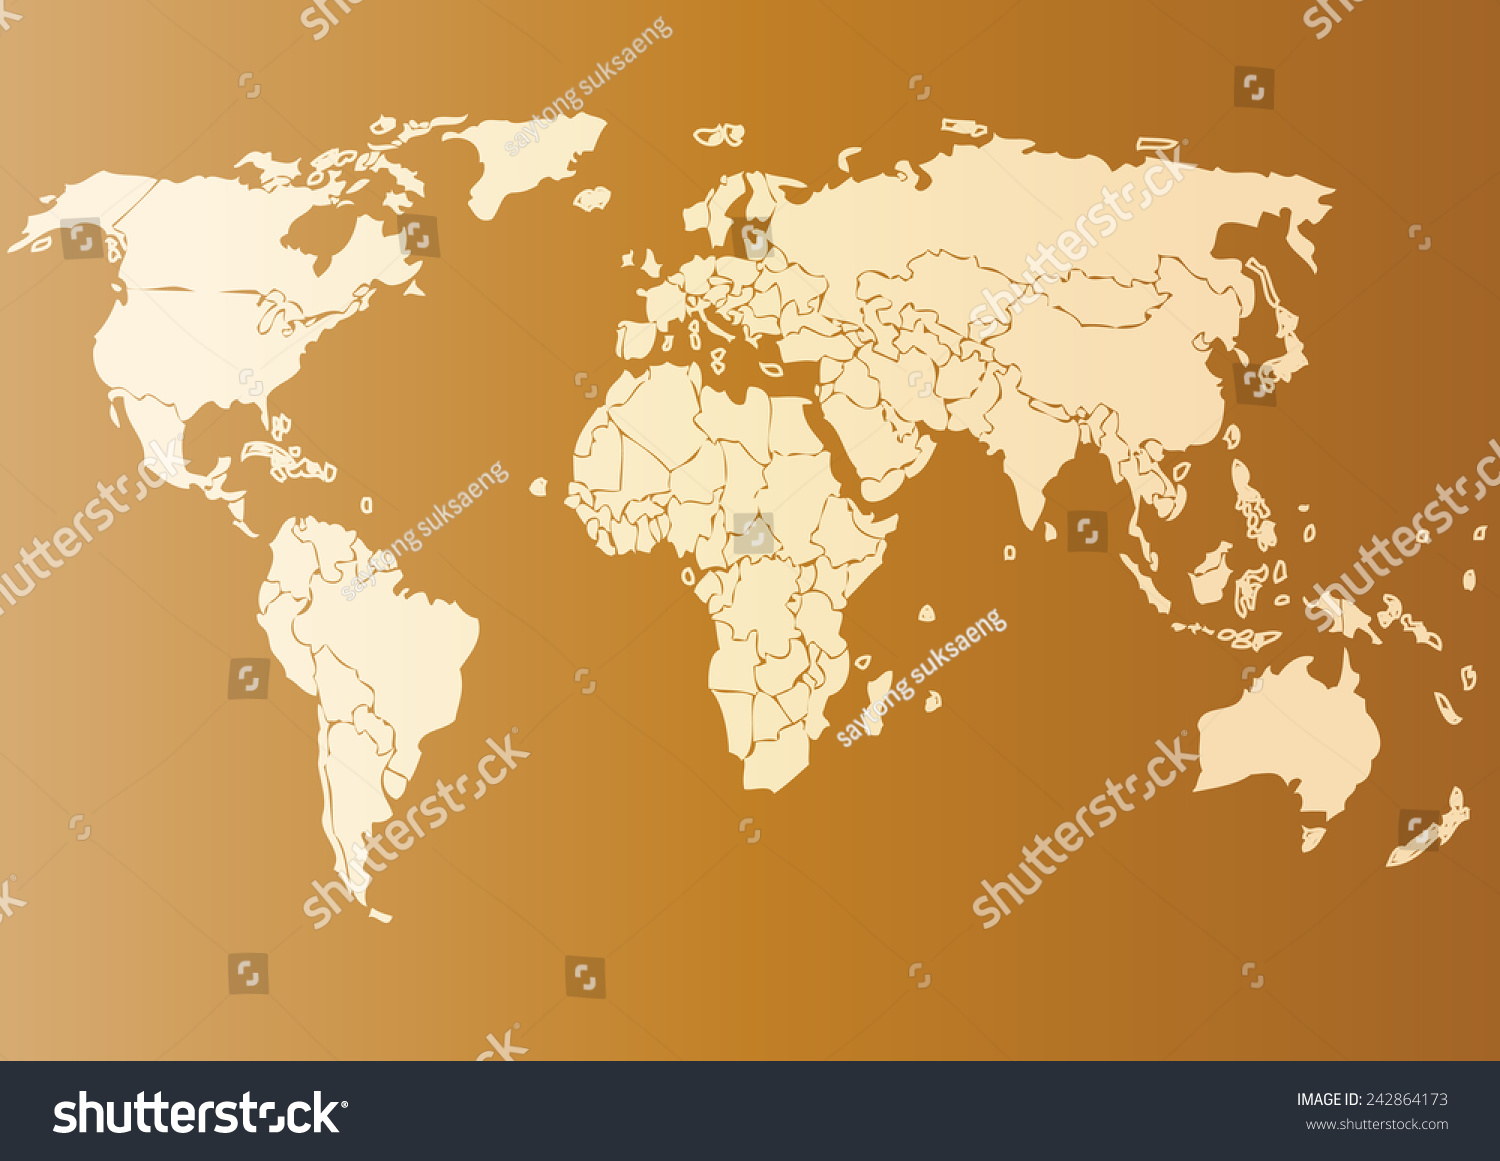 world map background vector - photo #38